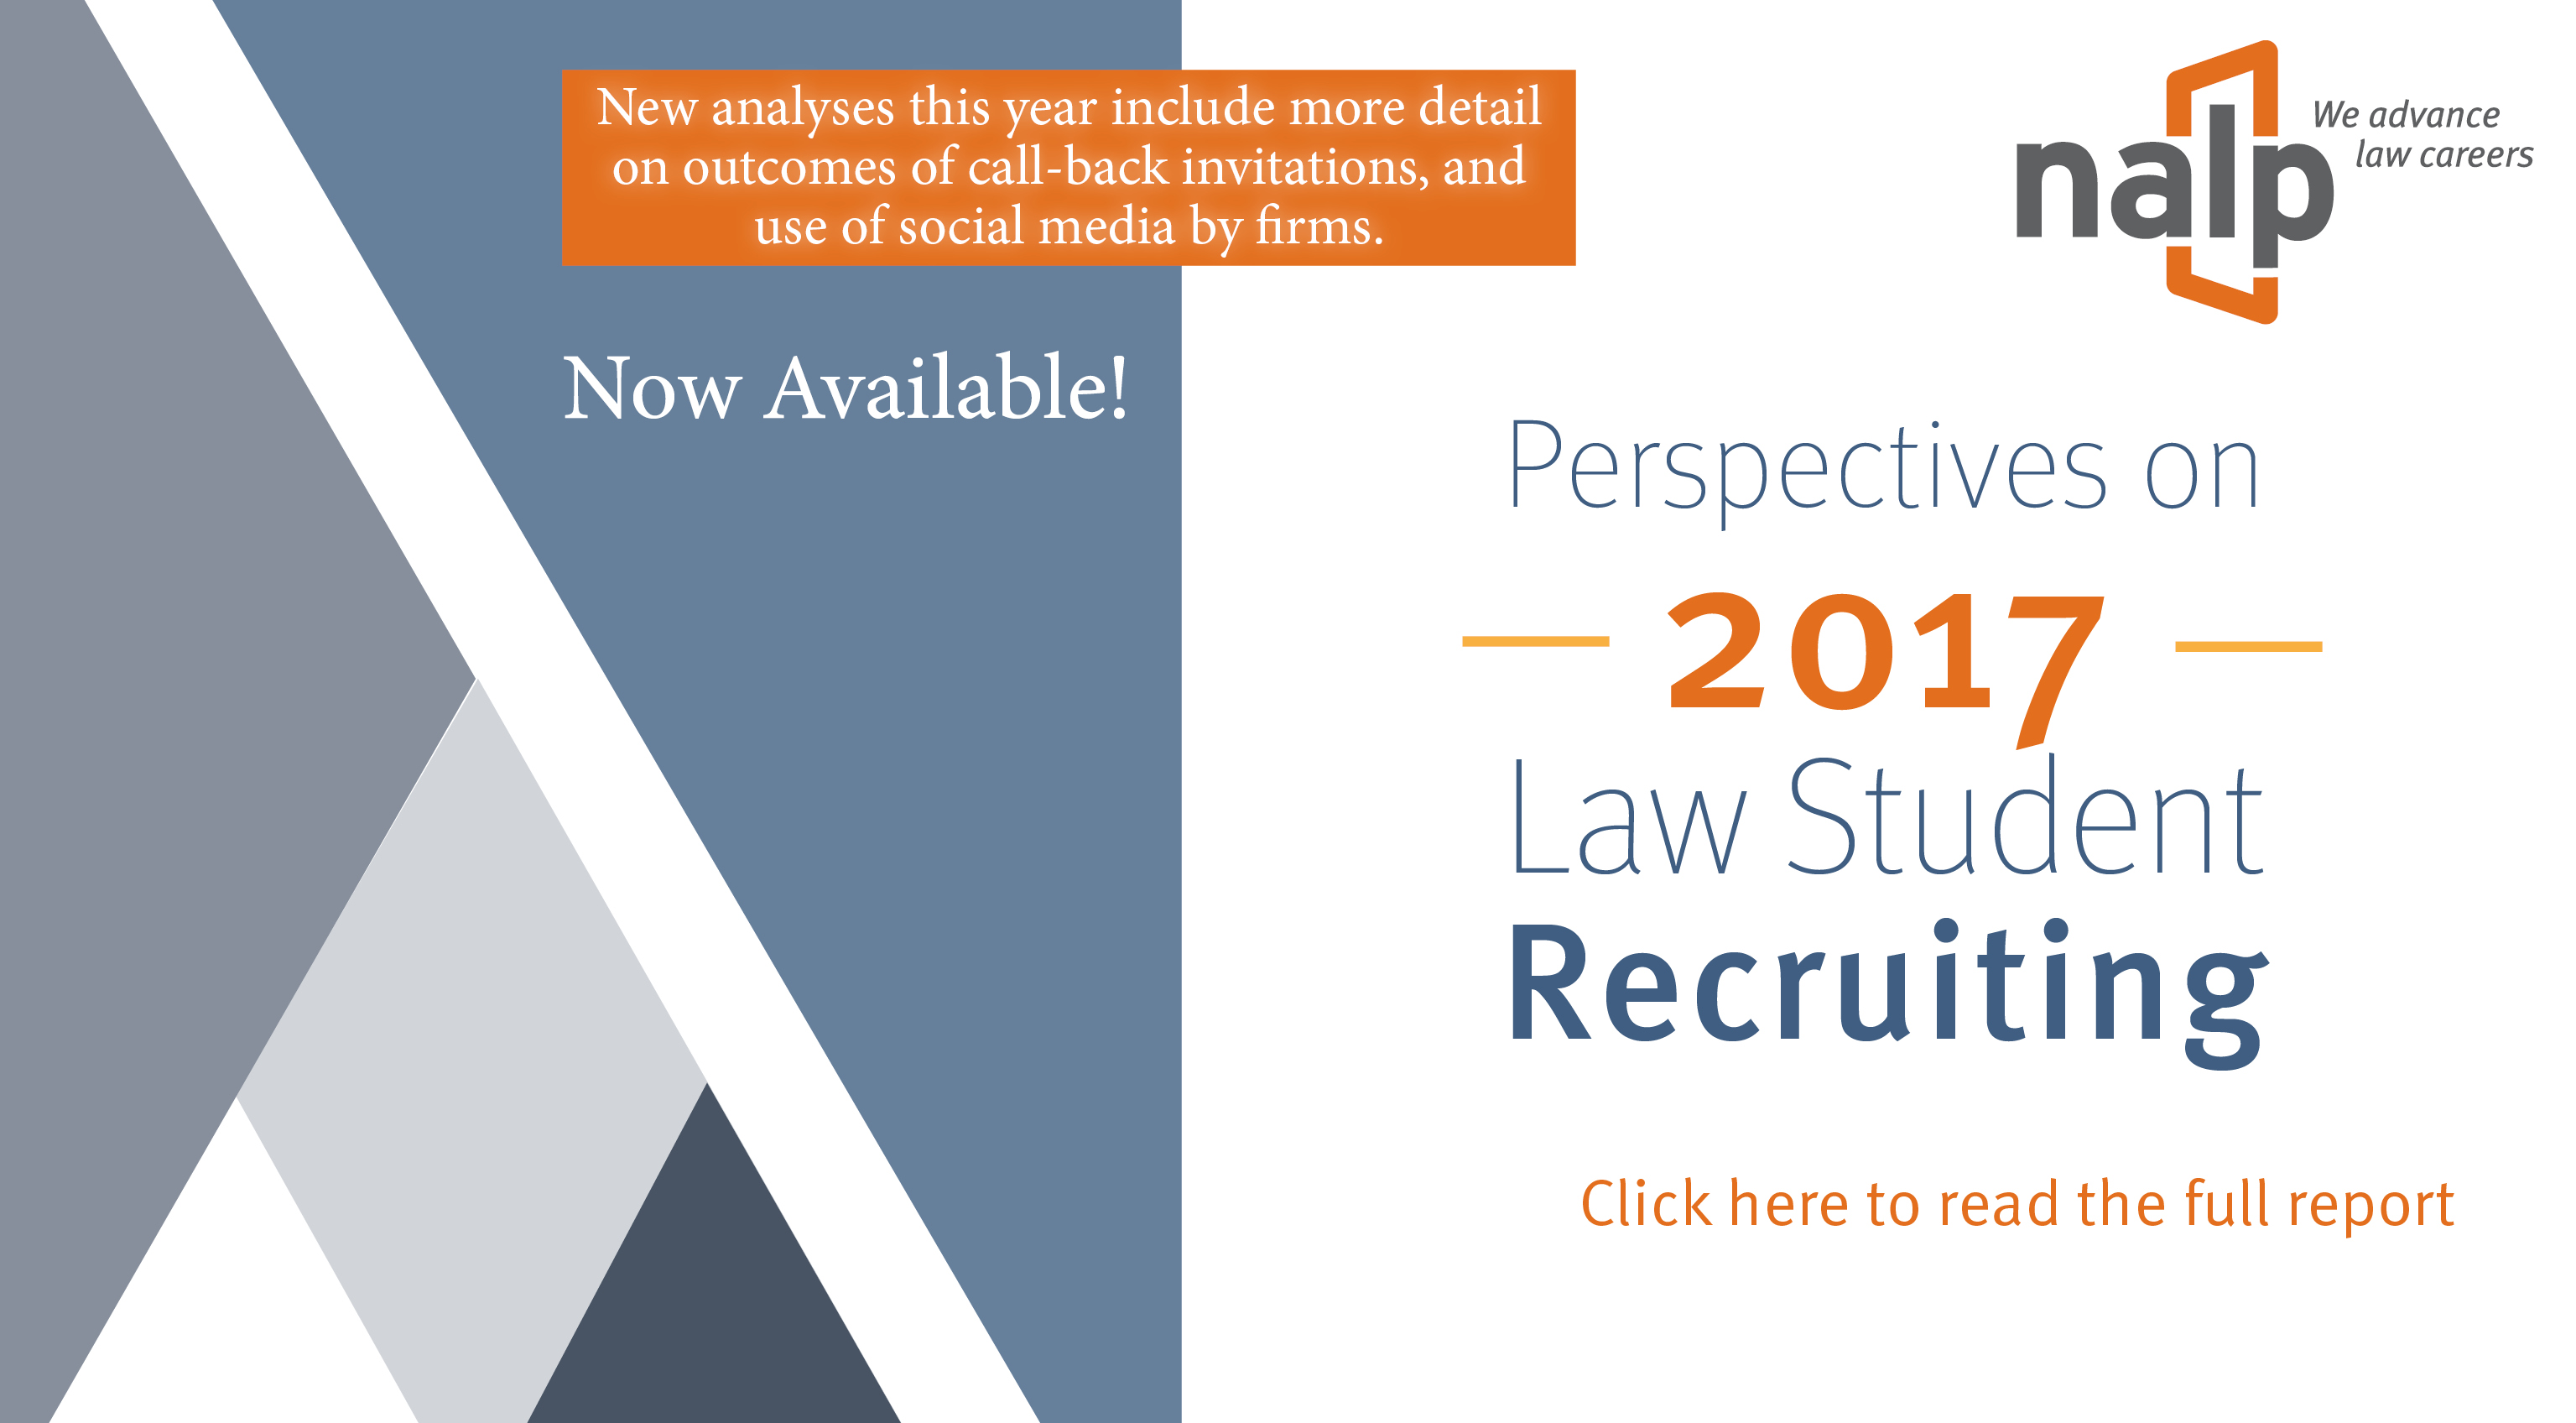 Perspectives on 2017 Law Student Recruiting Webslider